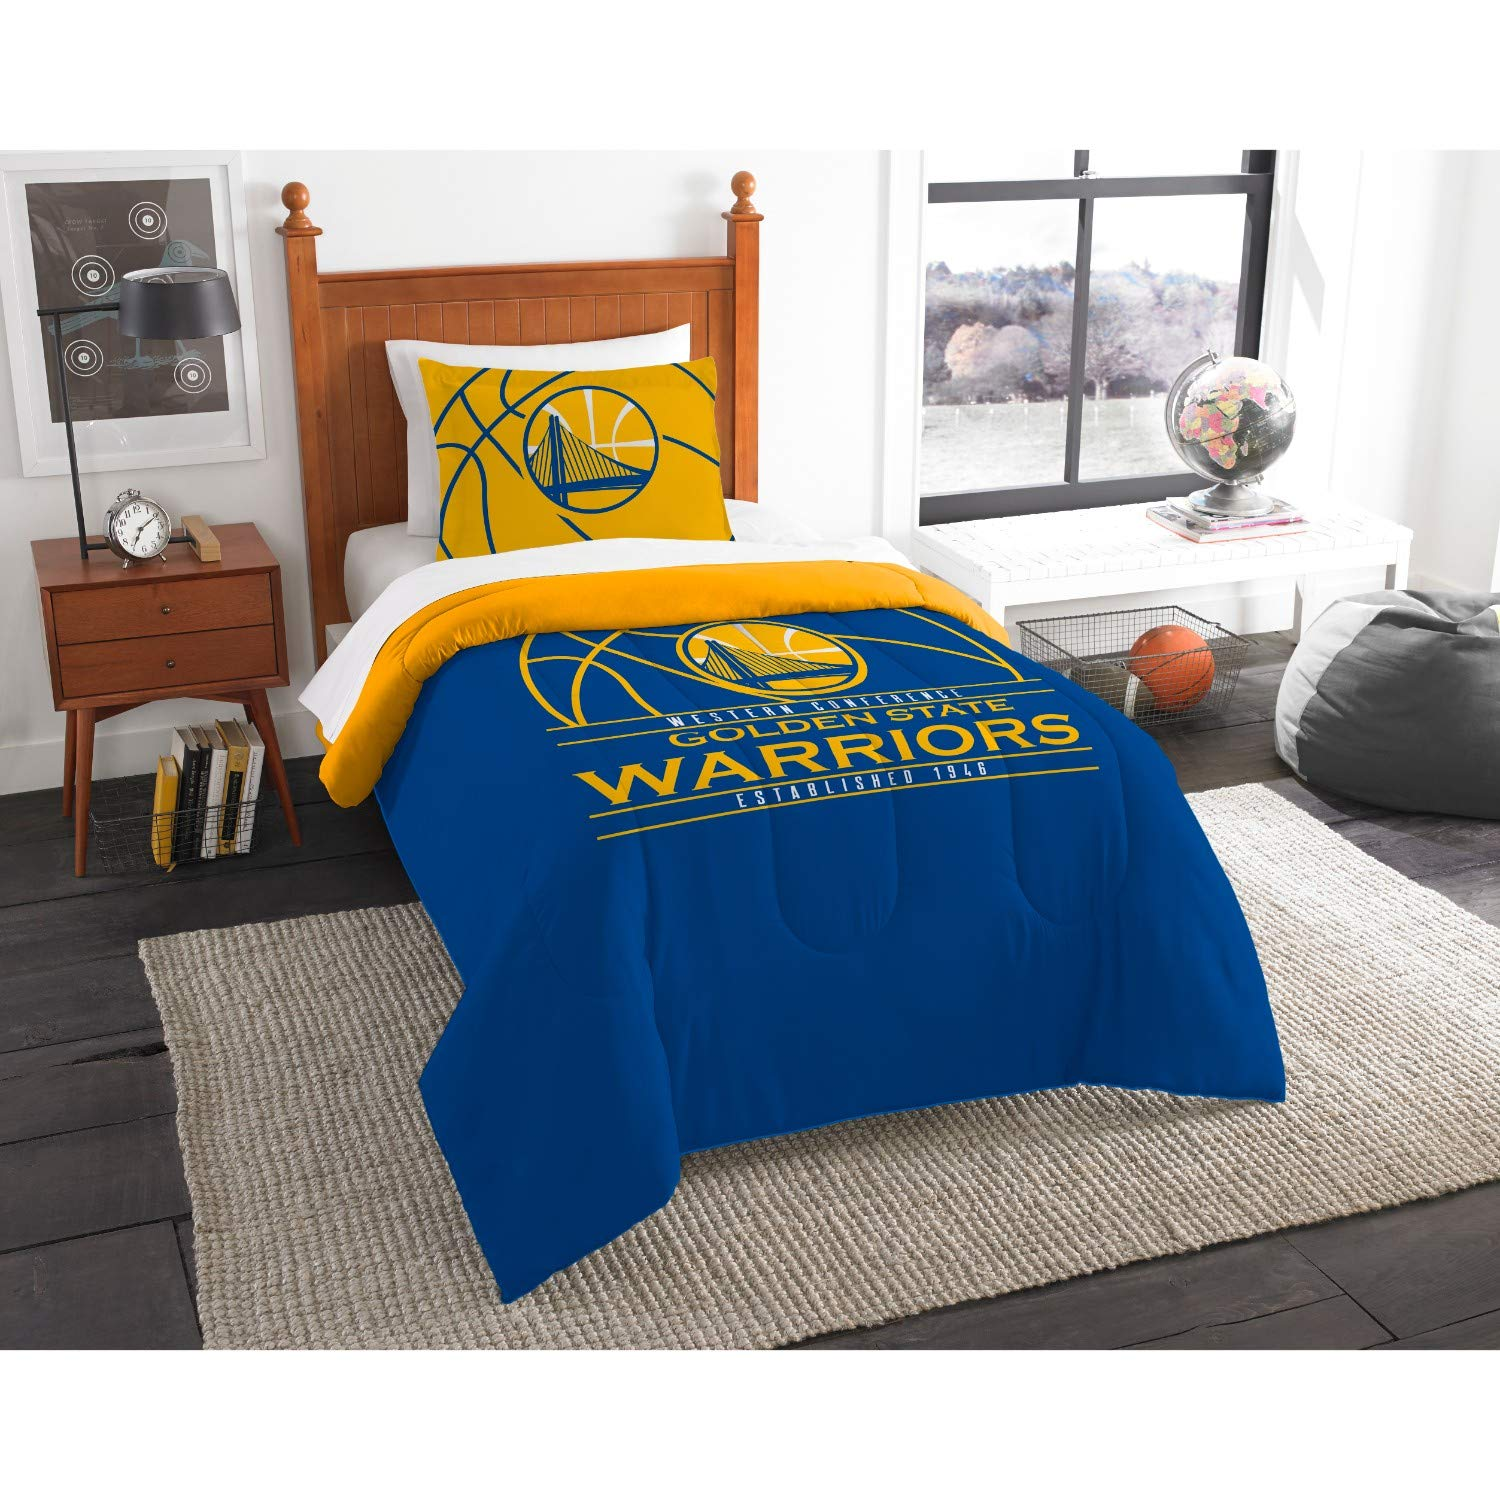 Golden [並行輸入品] B07H1PYFBQ State Warriors Twin Comforter Set Golden [並行輸入品] B07H1PYFBQ, コラボコスメ:5338557c --- m2cweb.com